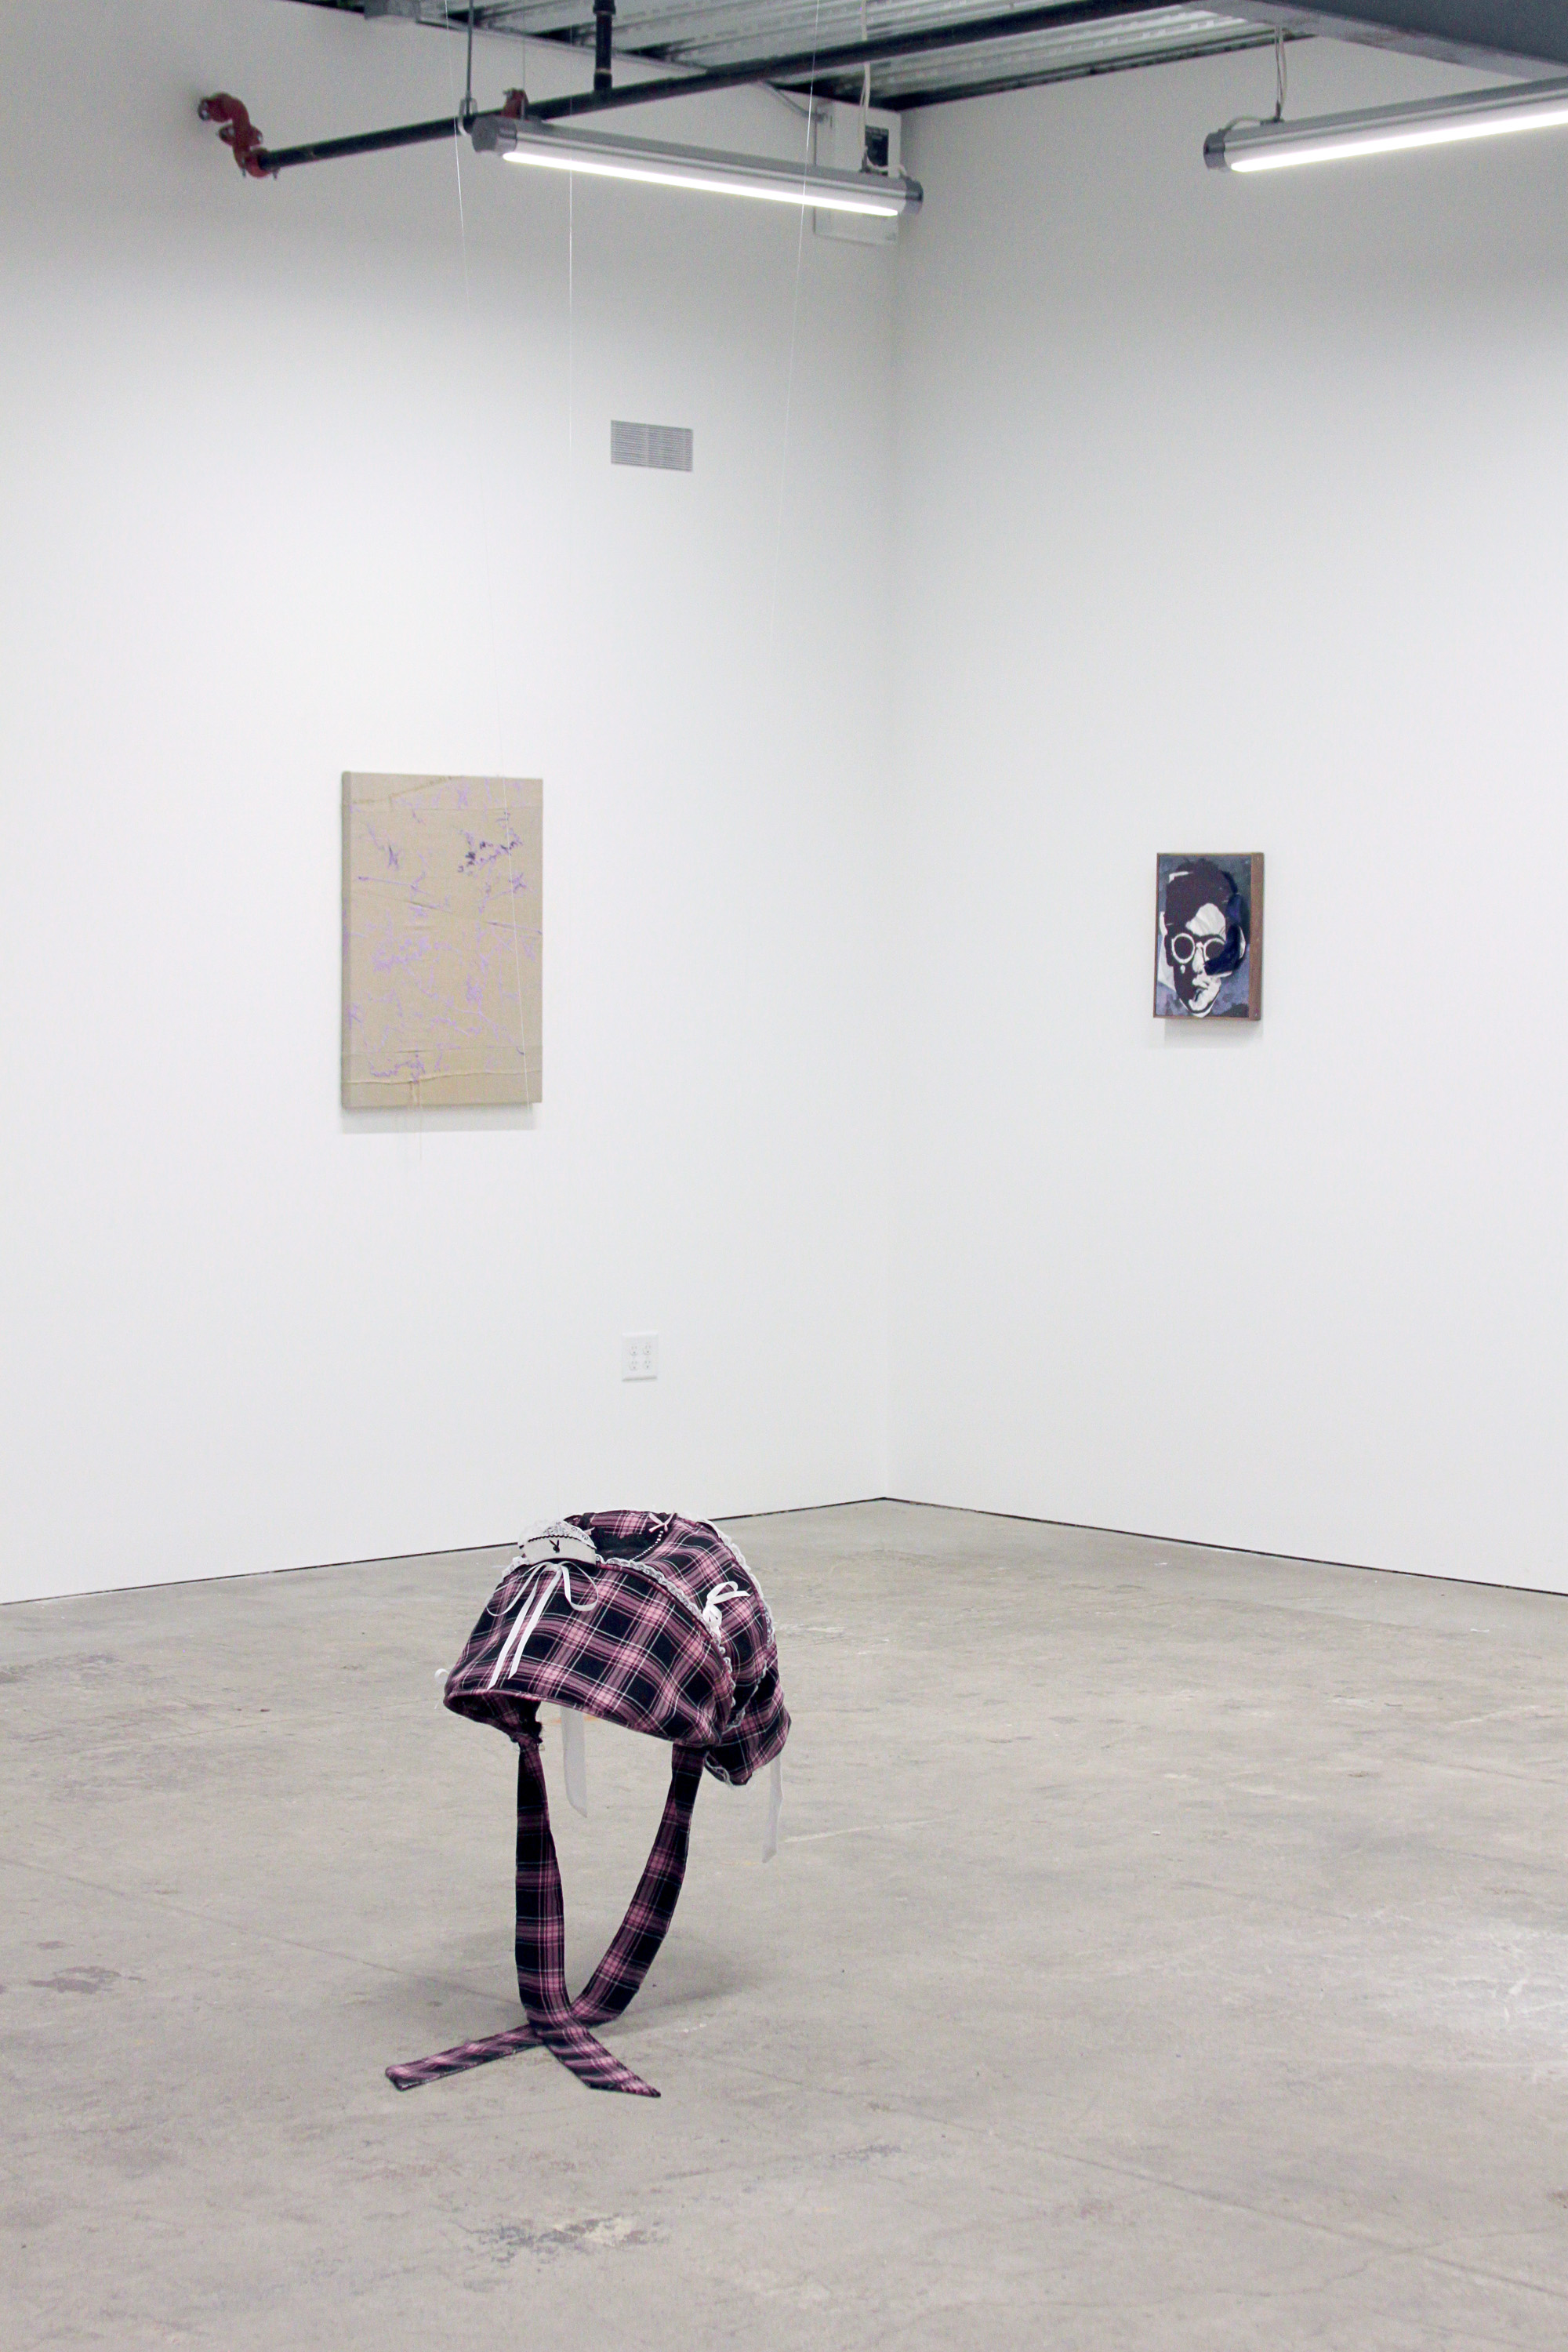 8_Group_Install_21_Springsteen_Gallery_Wrath_Pin_Face_Binned_at_Et_Al_Etc_at_Minnesota_Street_Project.jpg